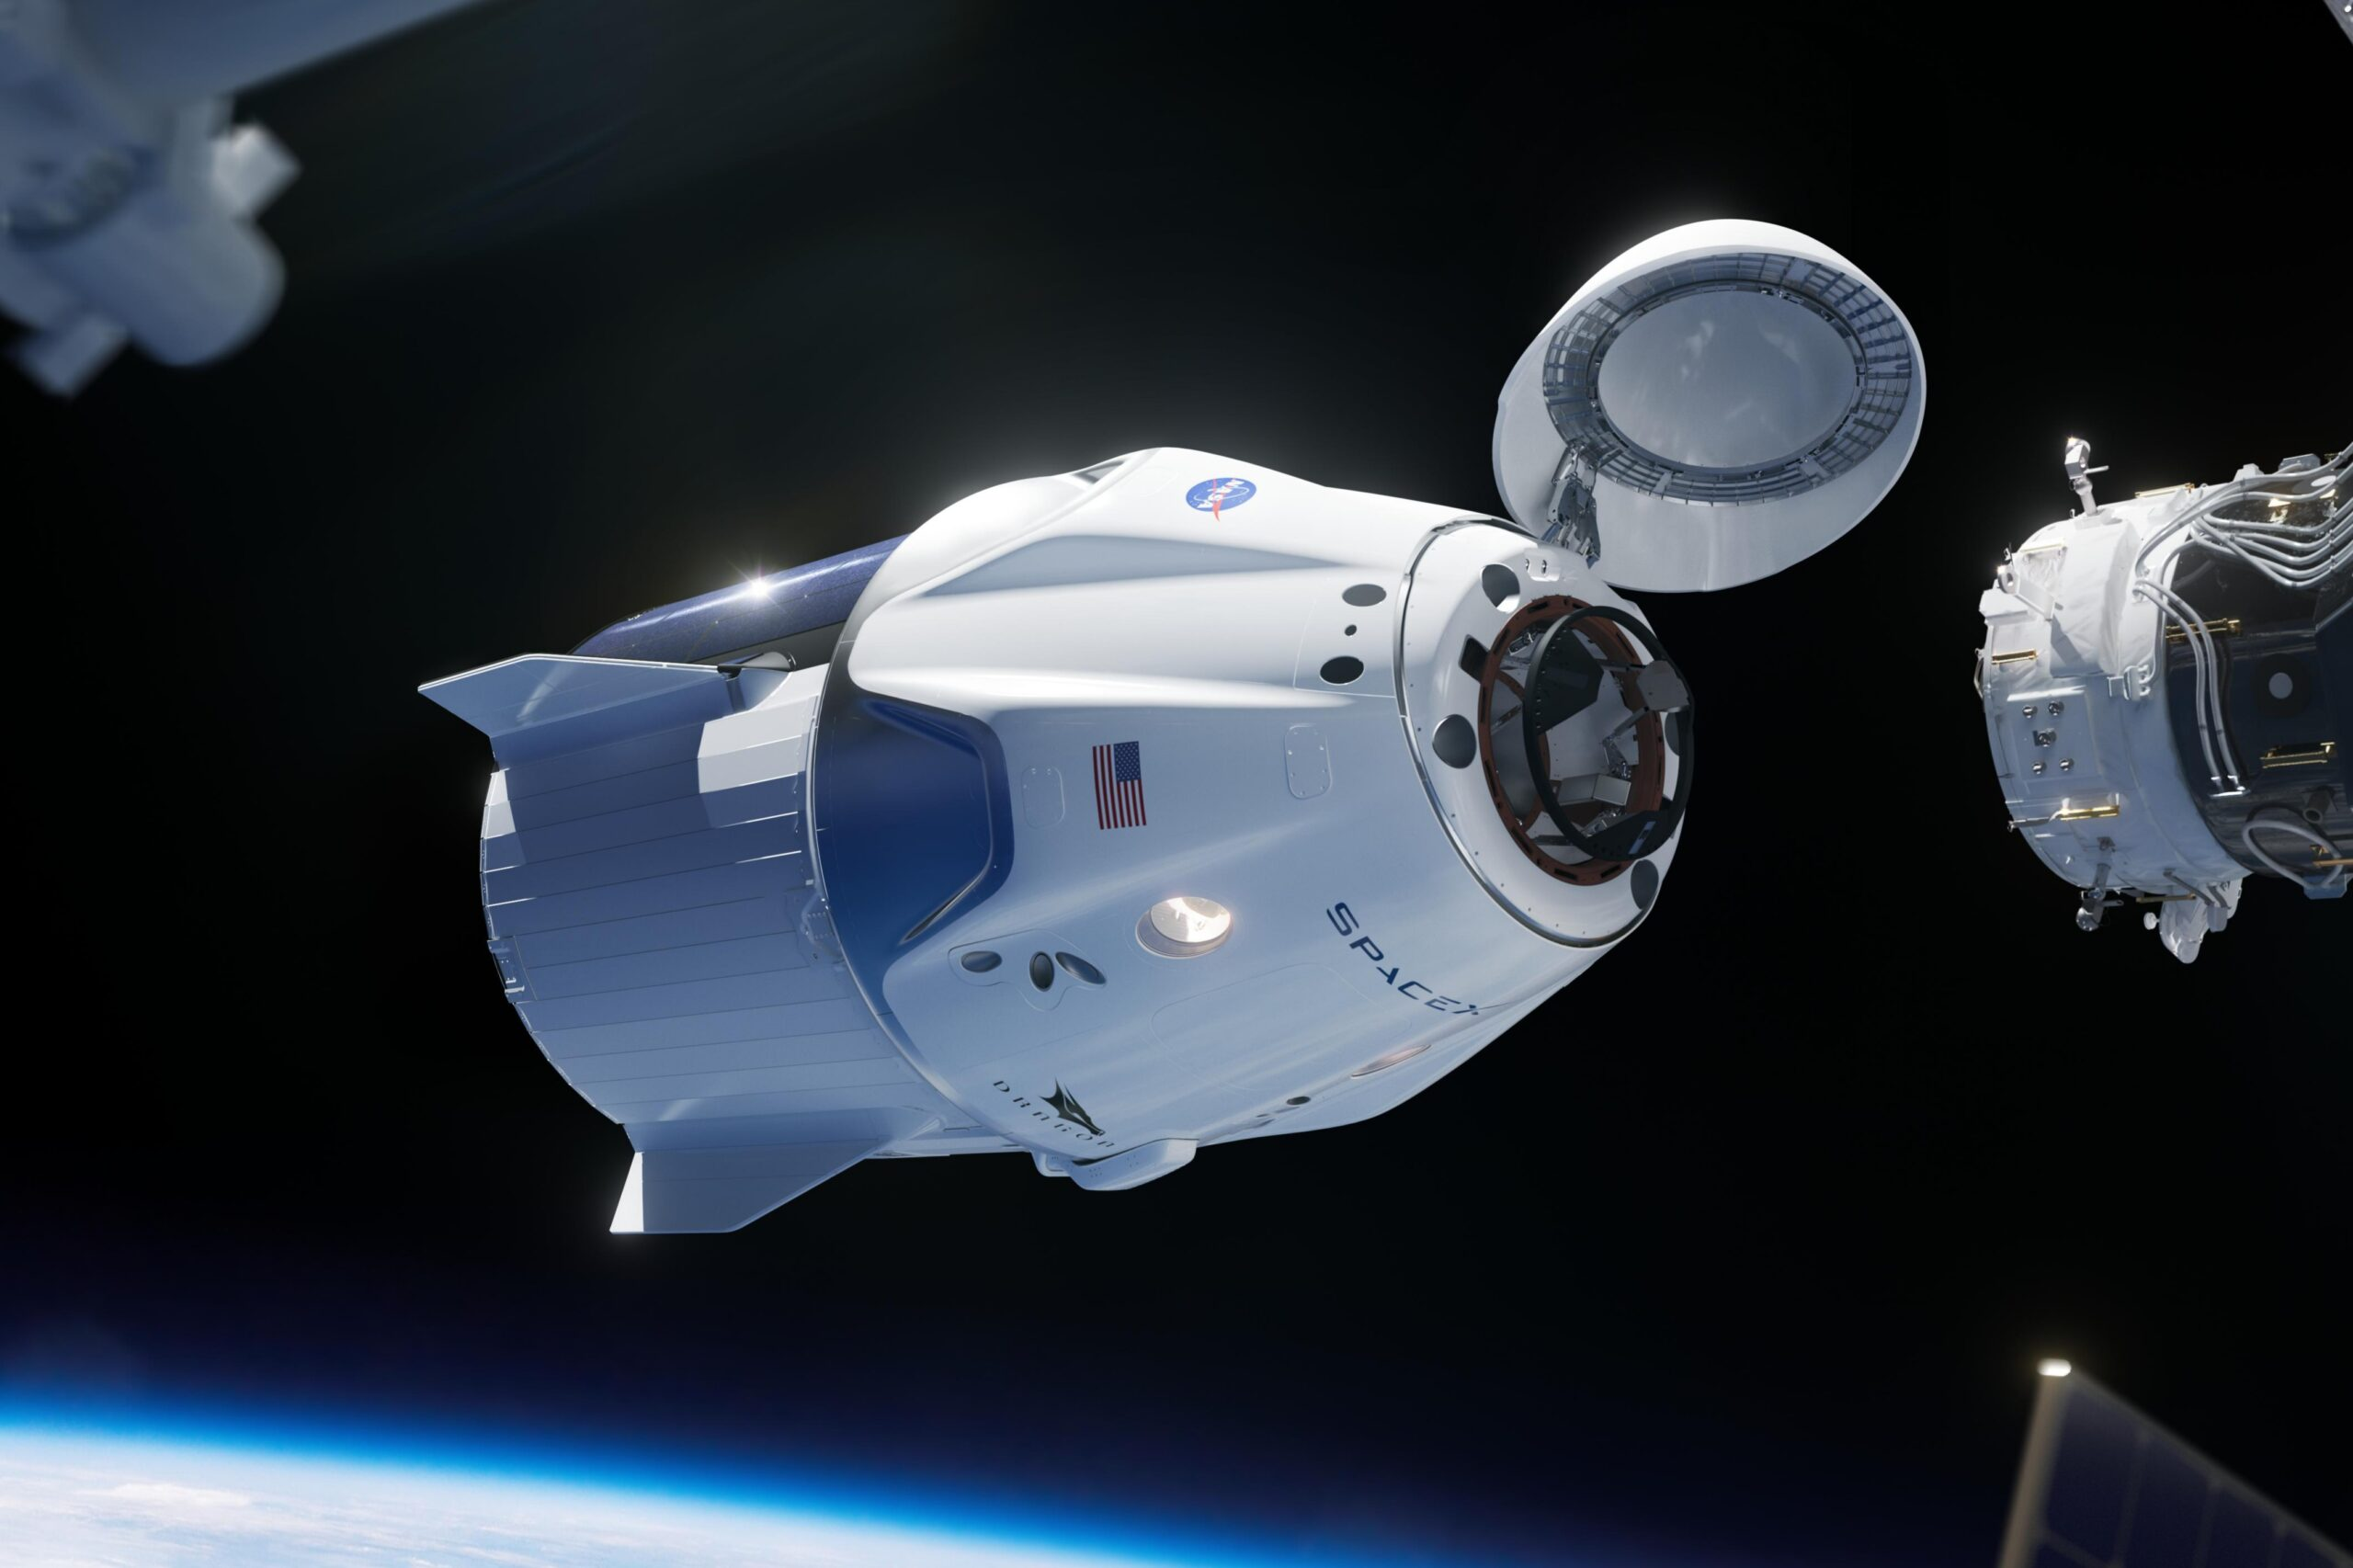 Crew Dragon, the spaceship from the 2020 SpaceX launch. Image source: Wikimedia Commons